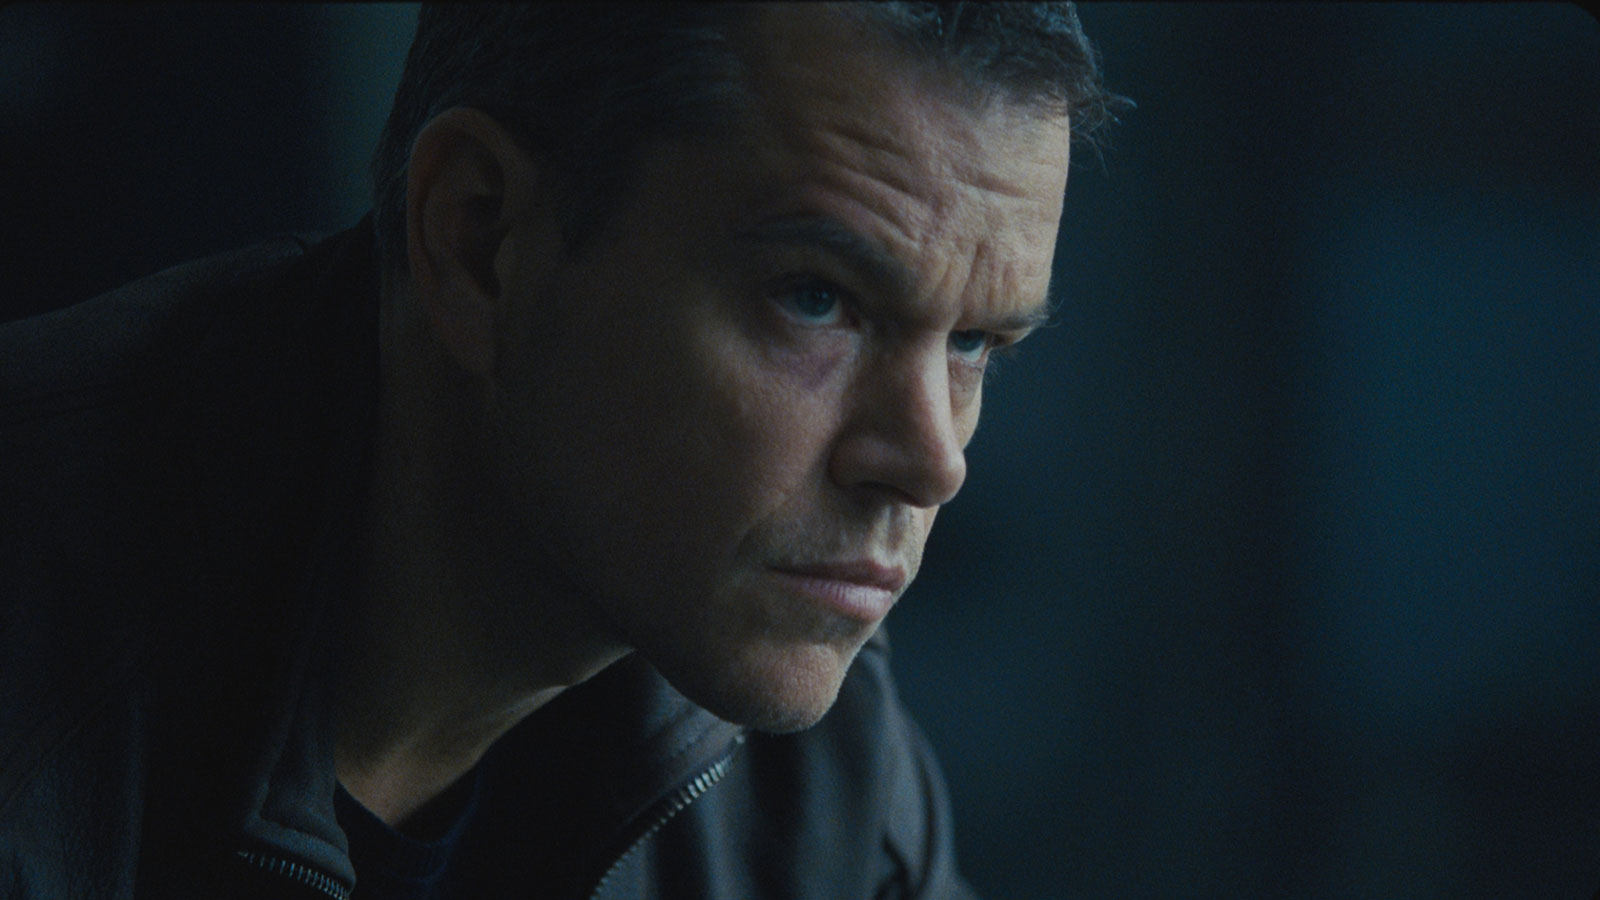 JASON BOURNE - Image 1 film 2016 Matt Damon Paul Greengrass Universal Pictures Matt Damon 2016 - Go with the Blog